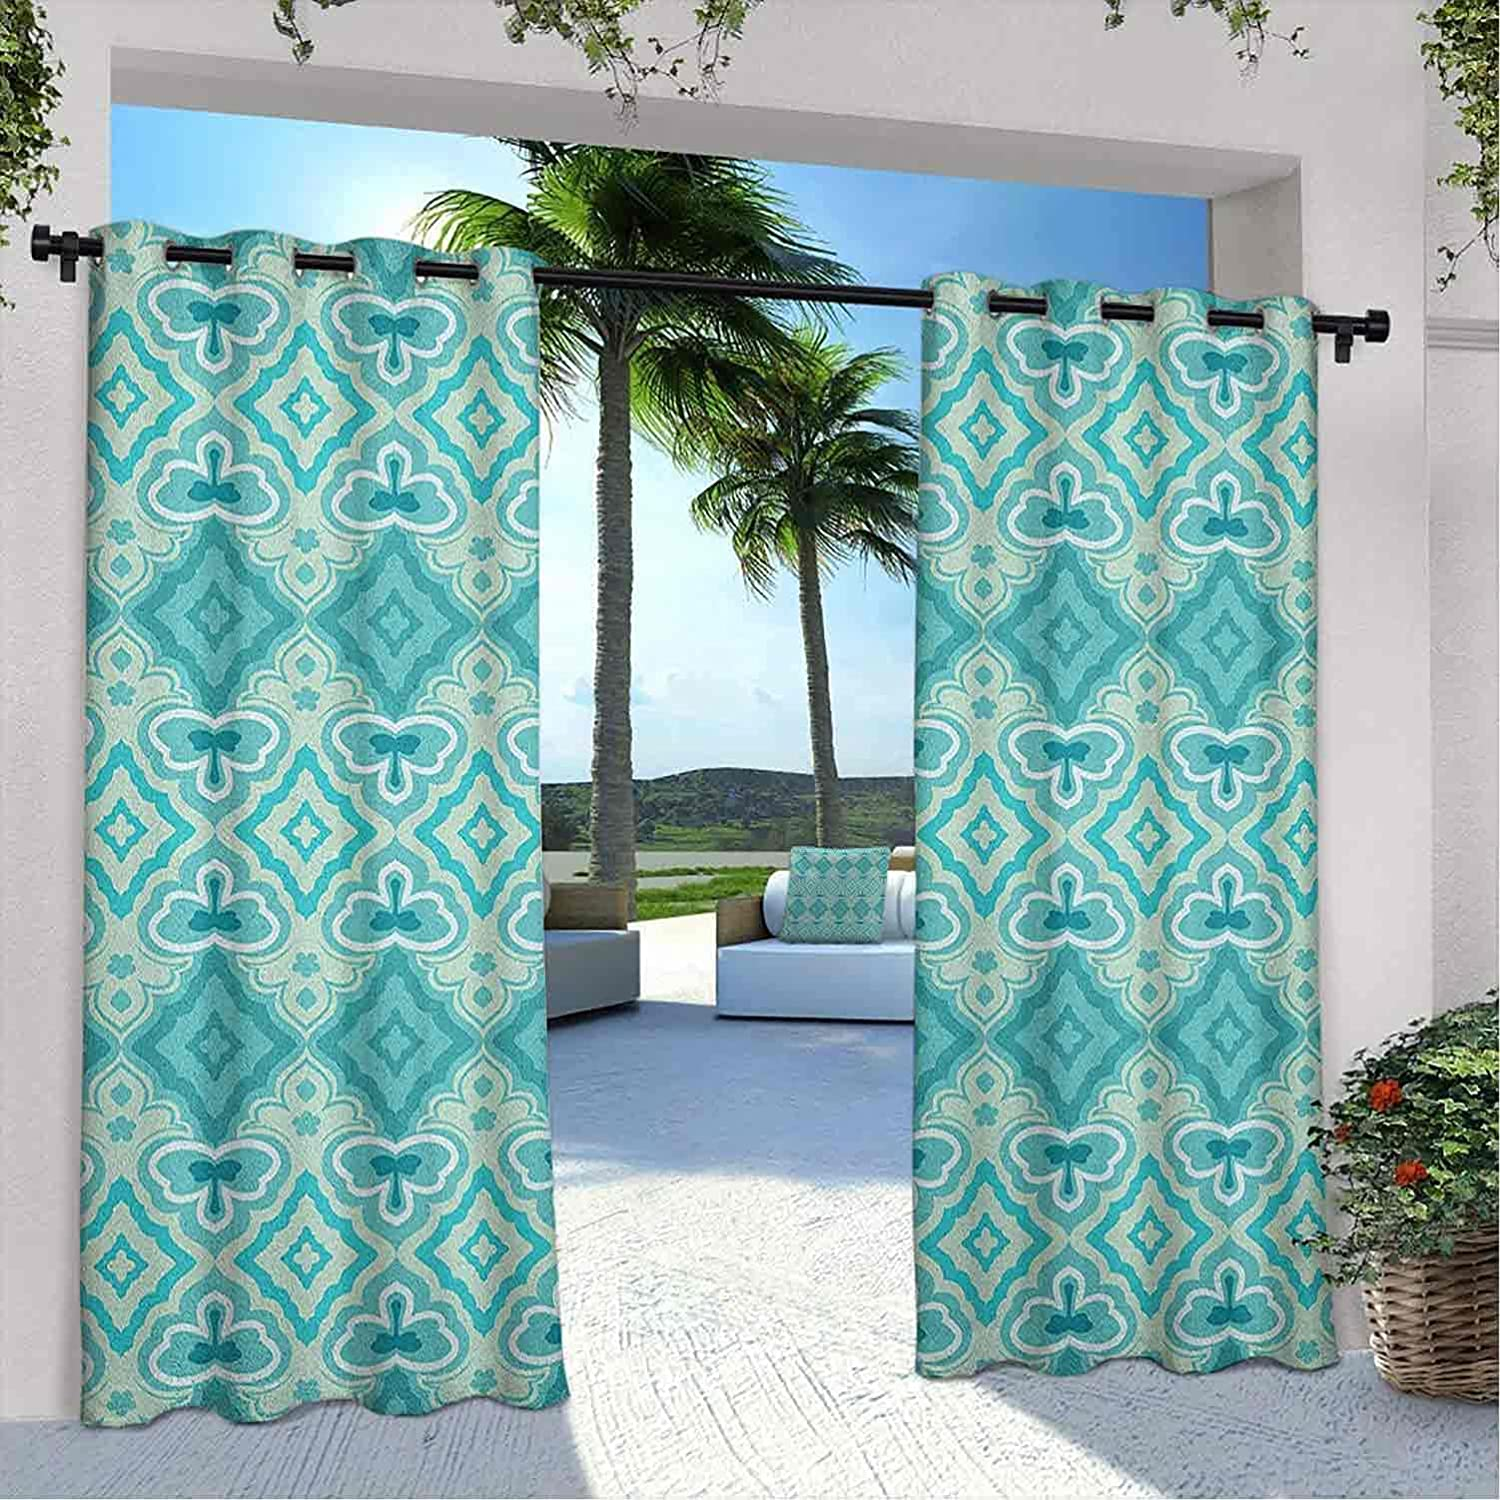 Outdoor Privacy Teal Curtain Max 64% OFF Abstract in Choice Geometric Vint Pattern